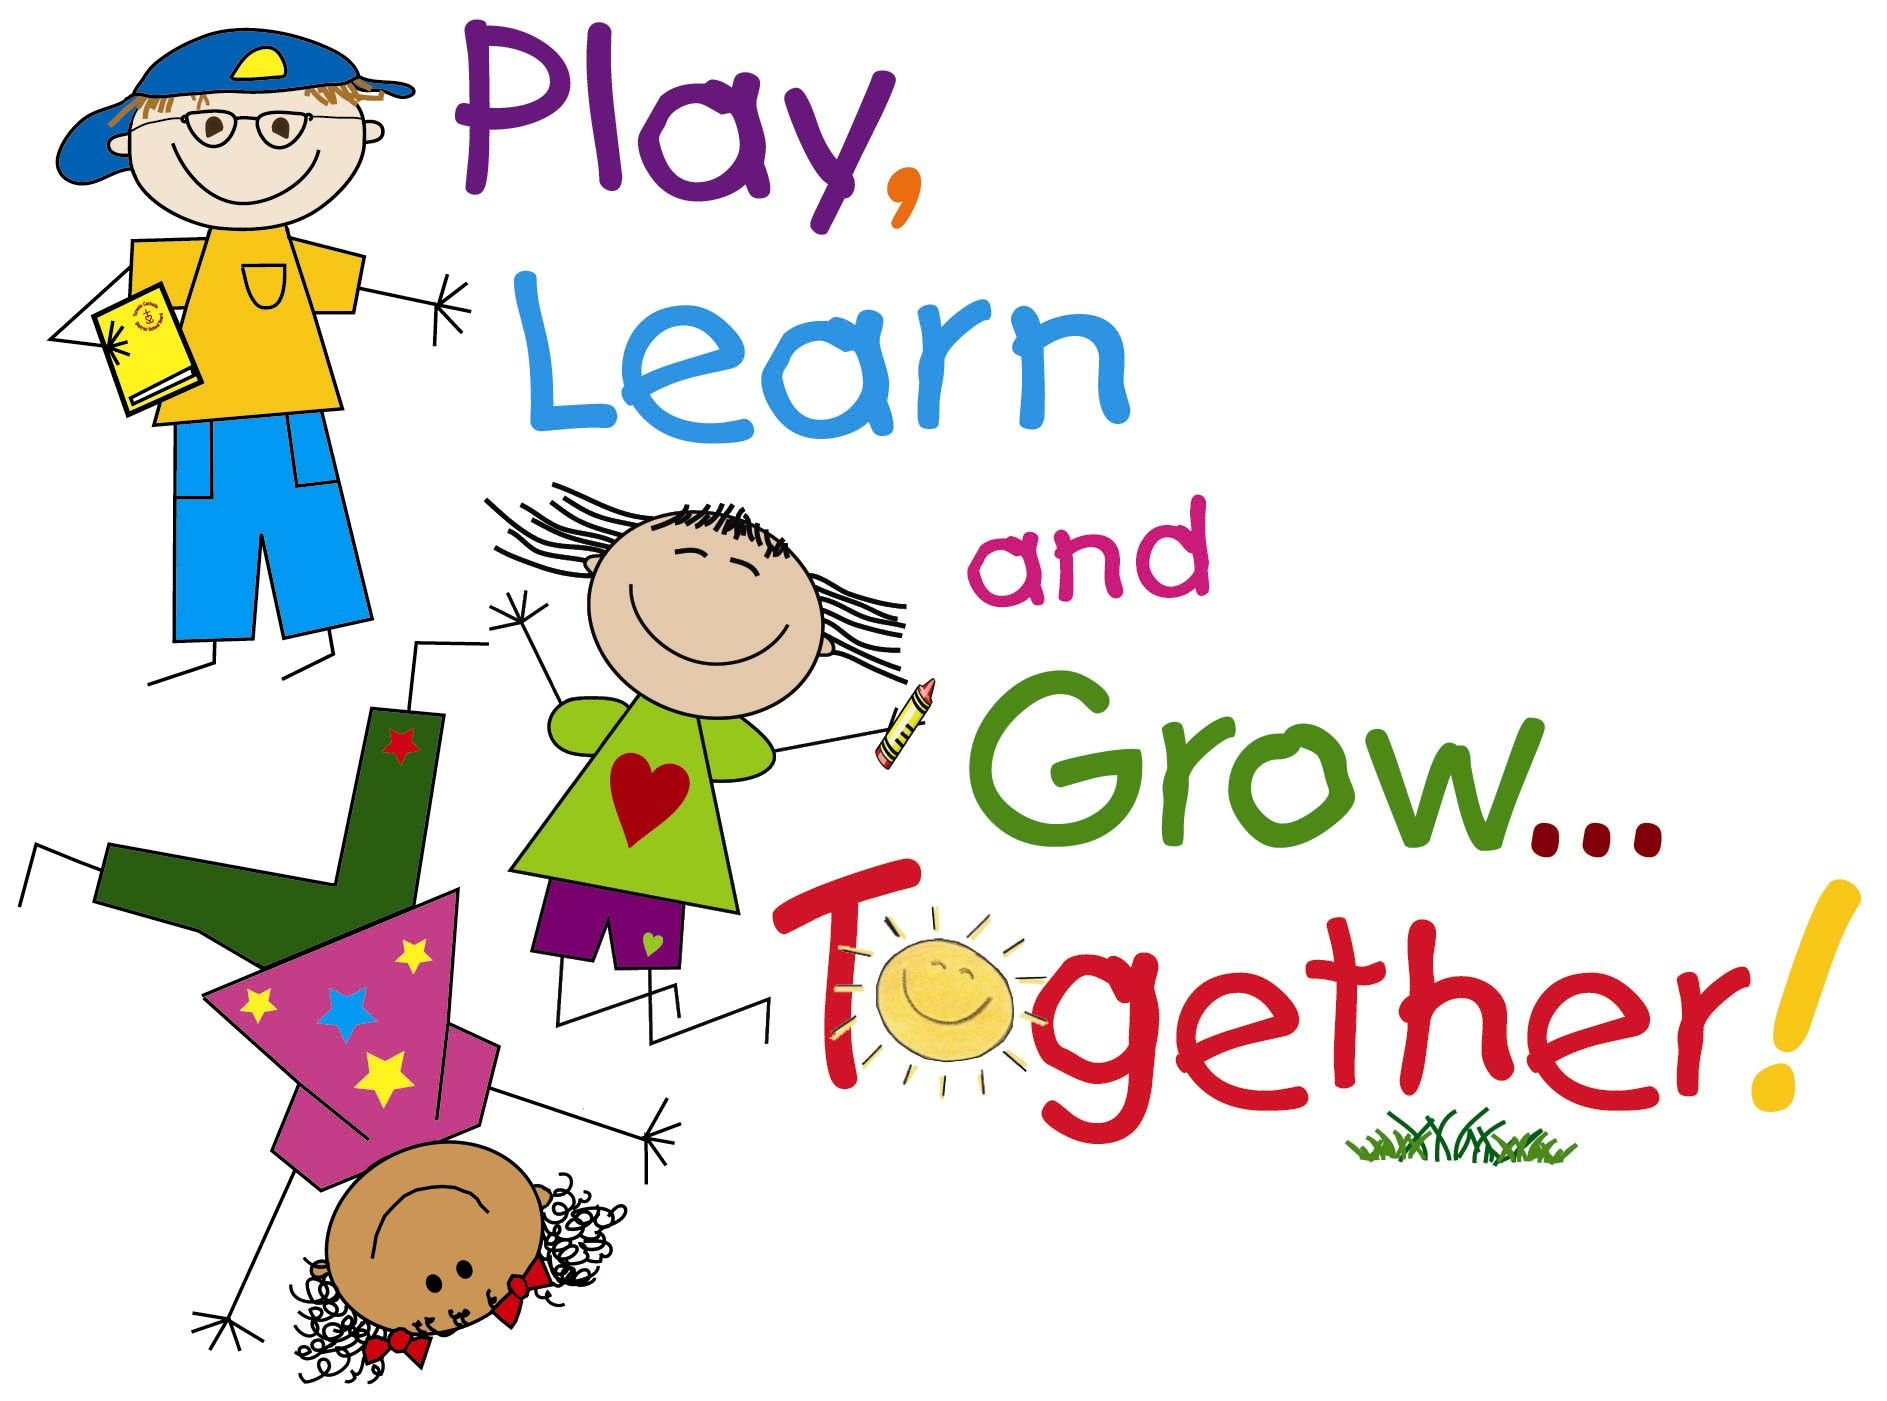 learn, play and grow